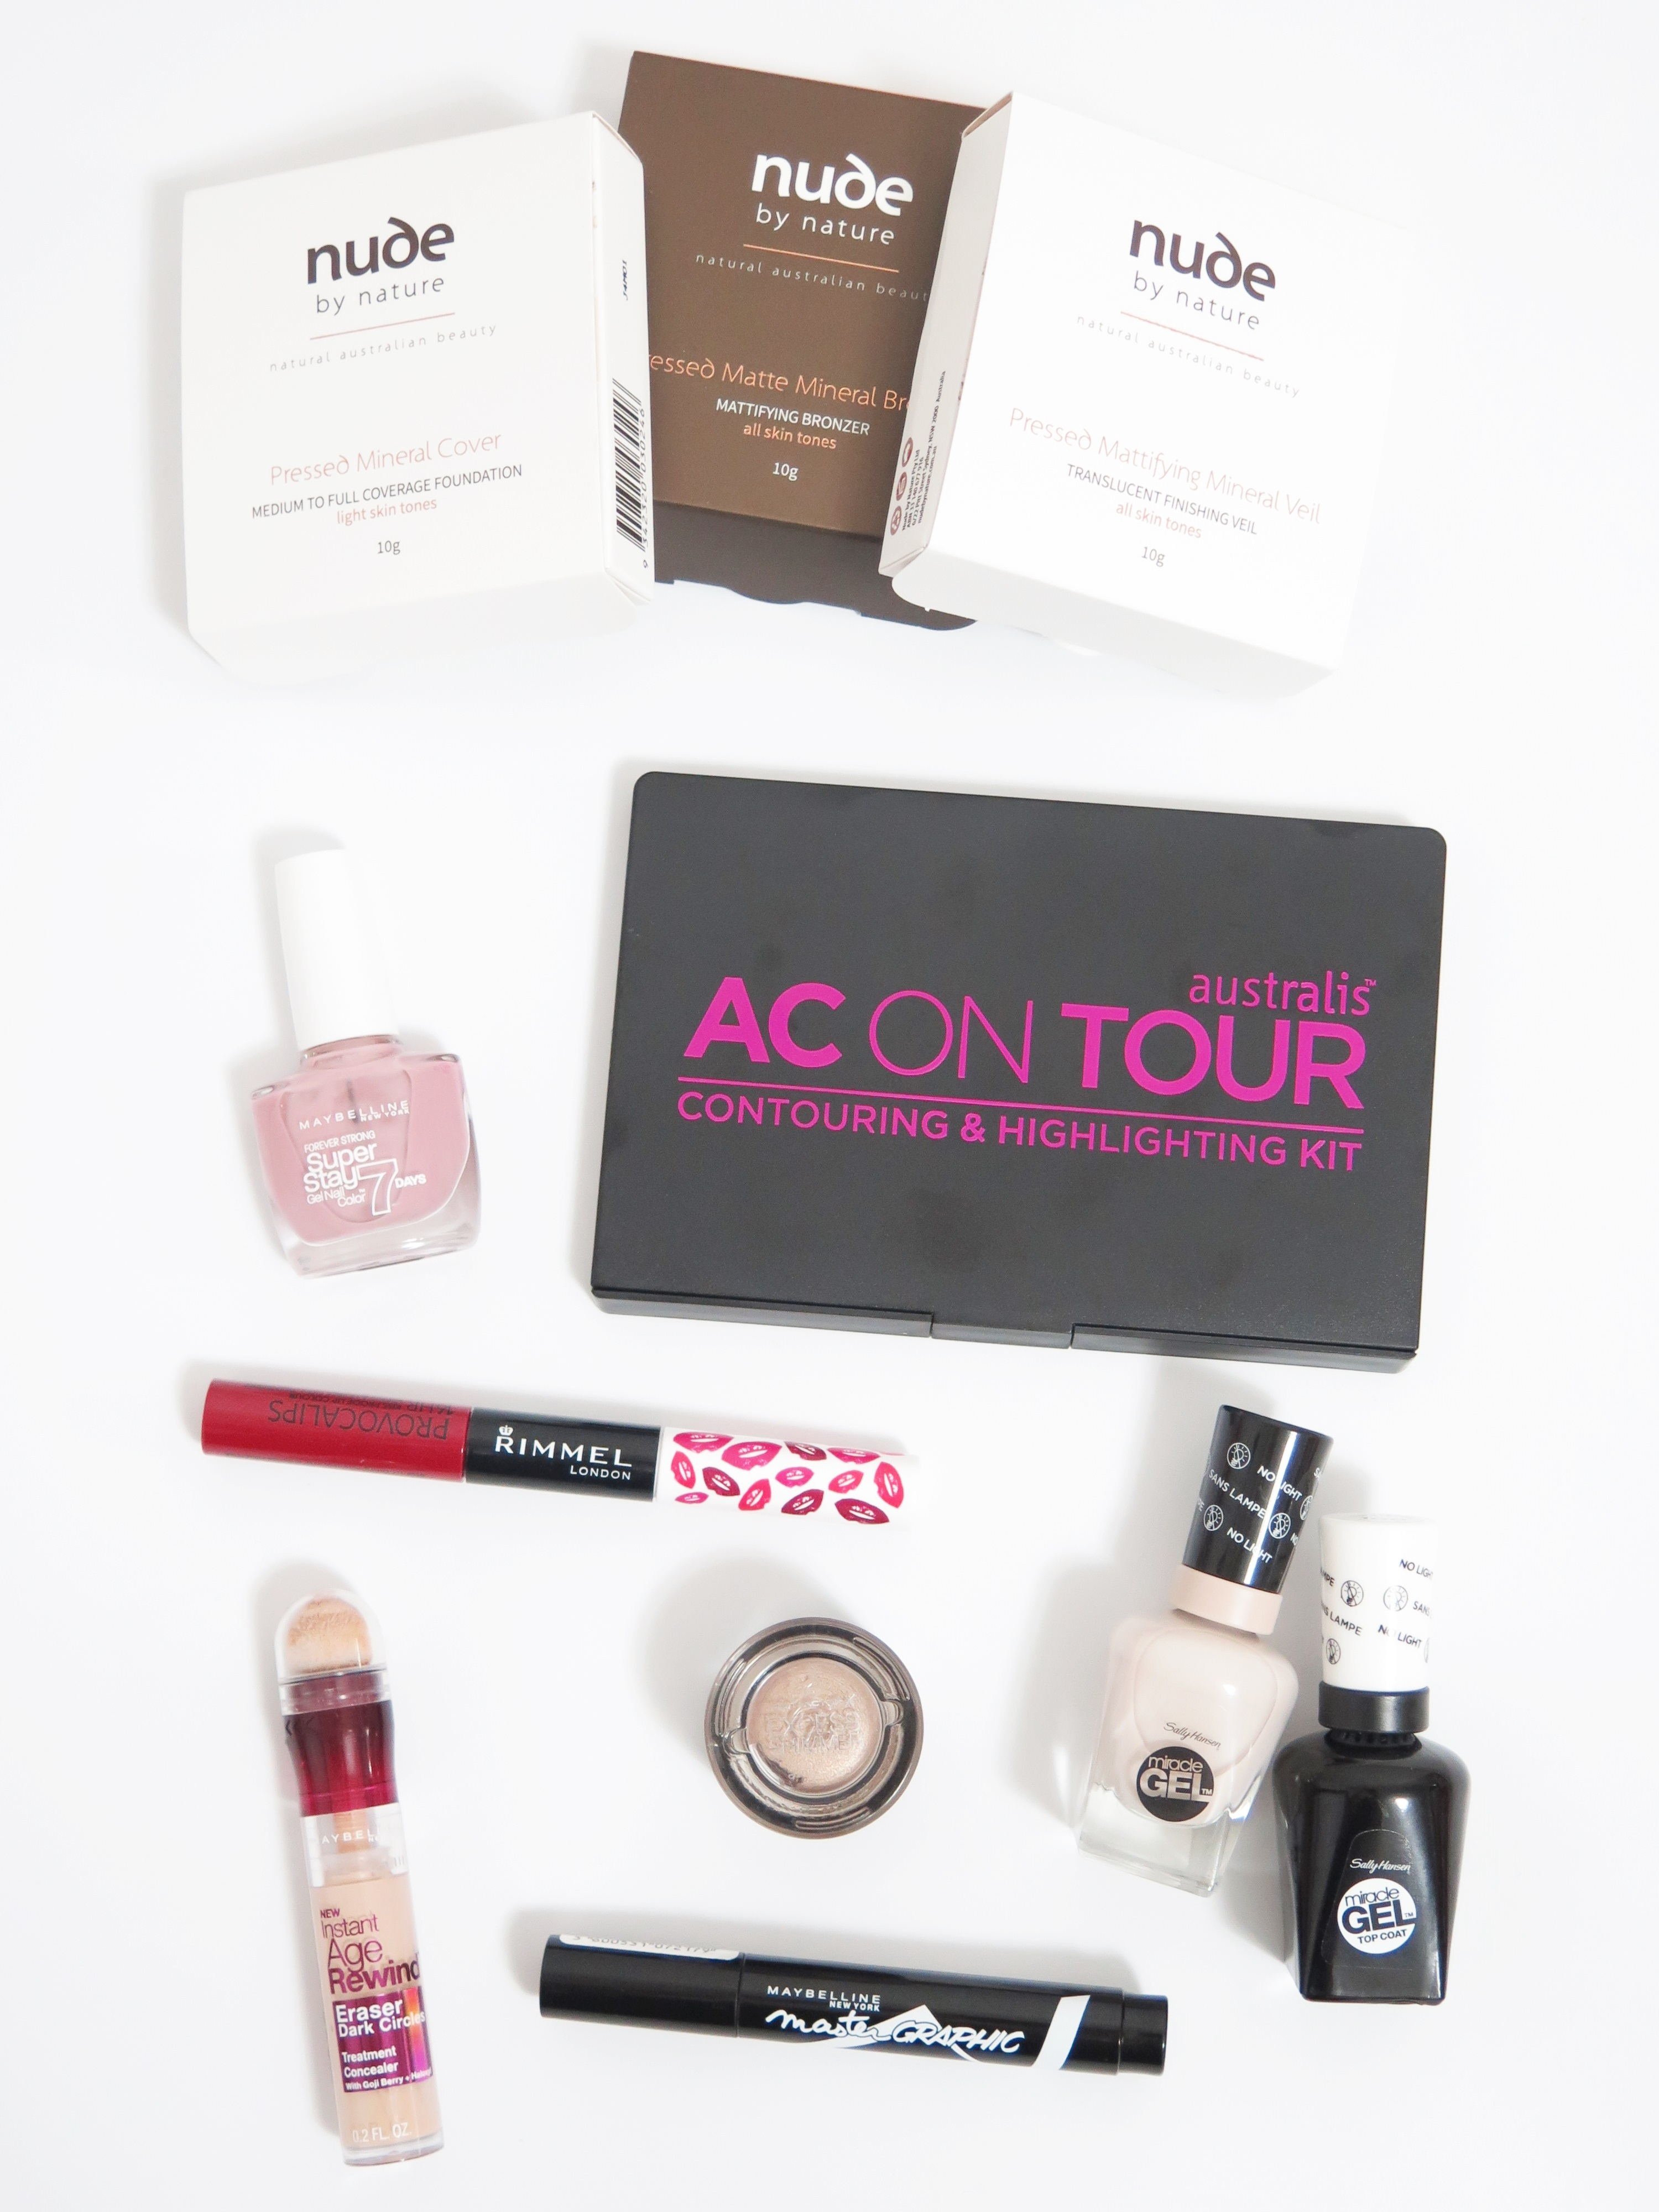 1e6646cc2ba Products To Pick Up During Priceline's 40% off ALL Cosmetics sale ...